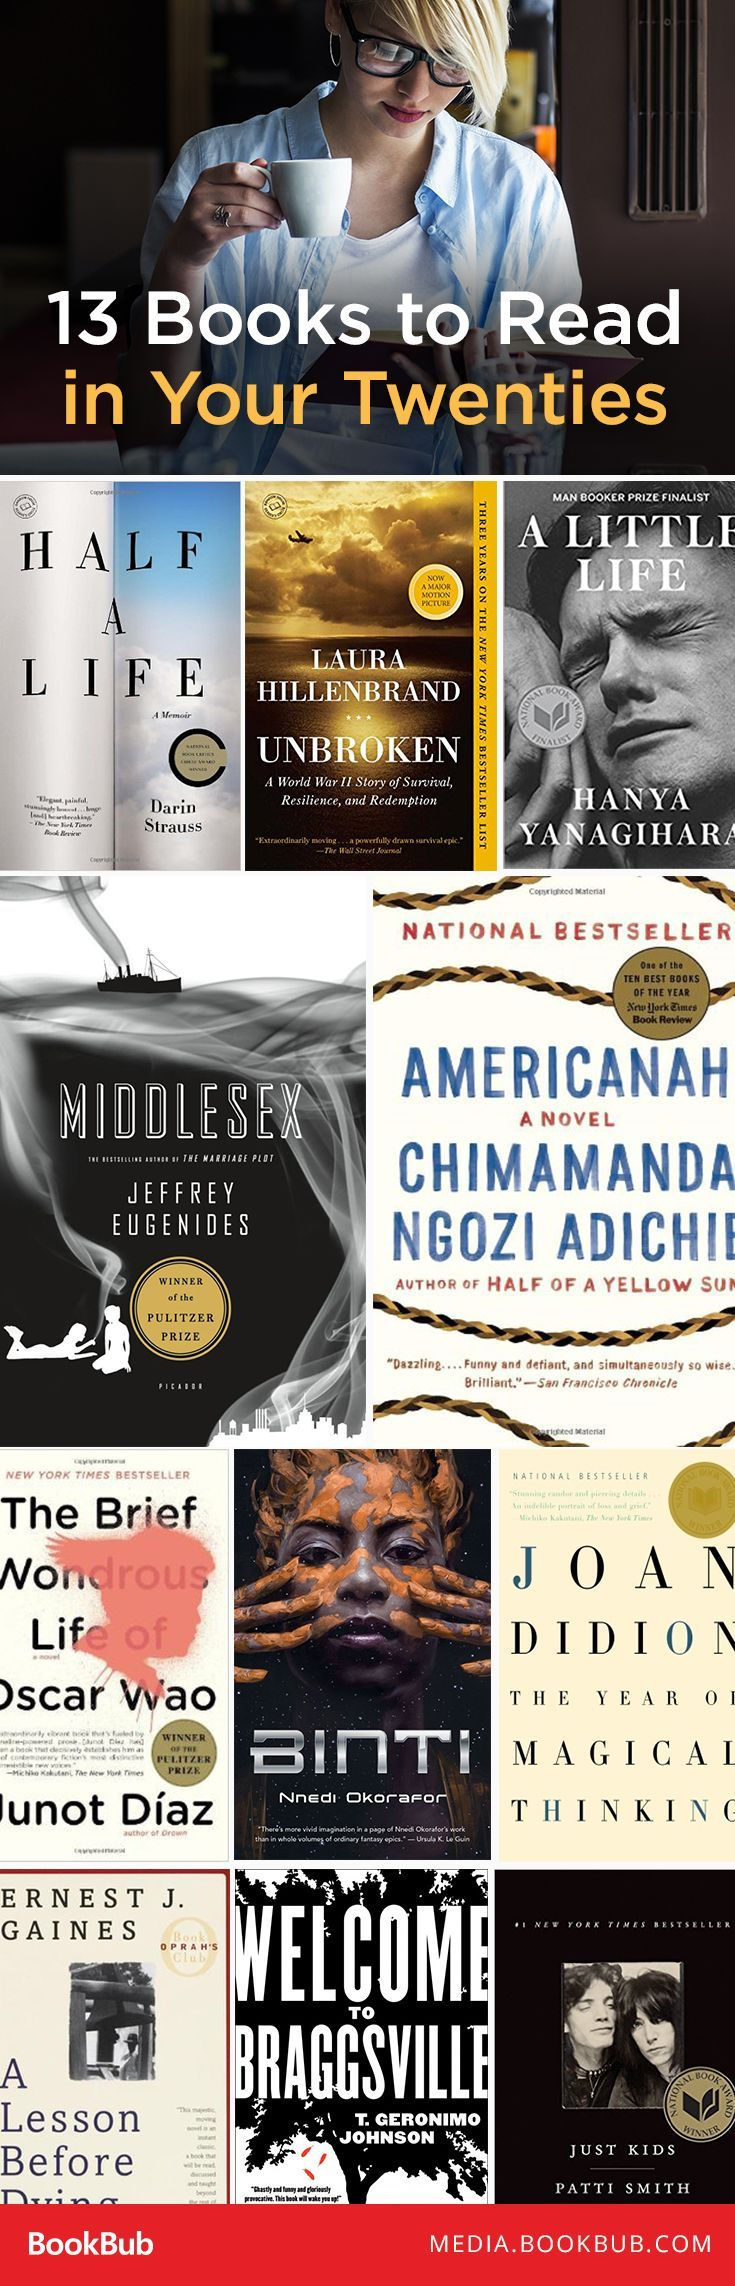 13 Awardwinning Books To Read In Your 20s